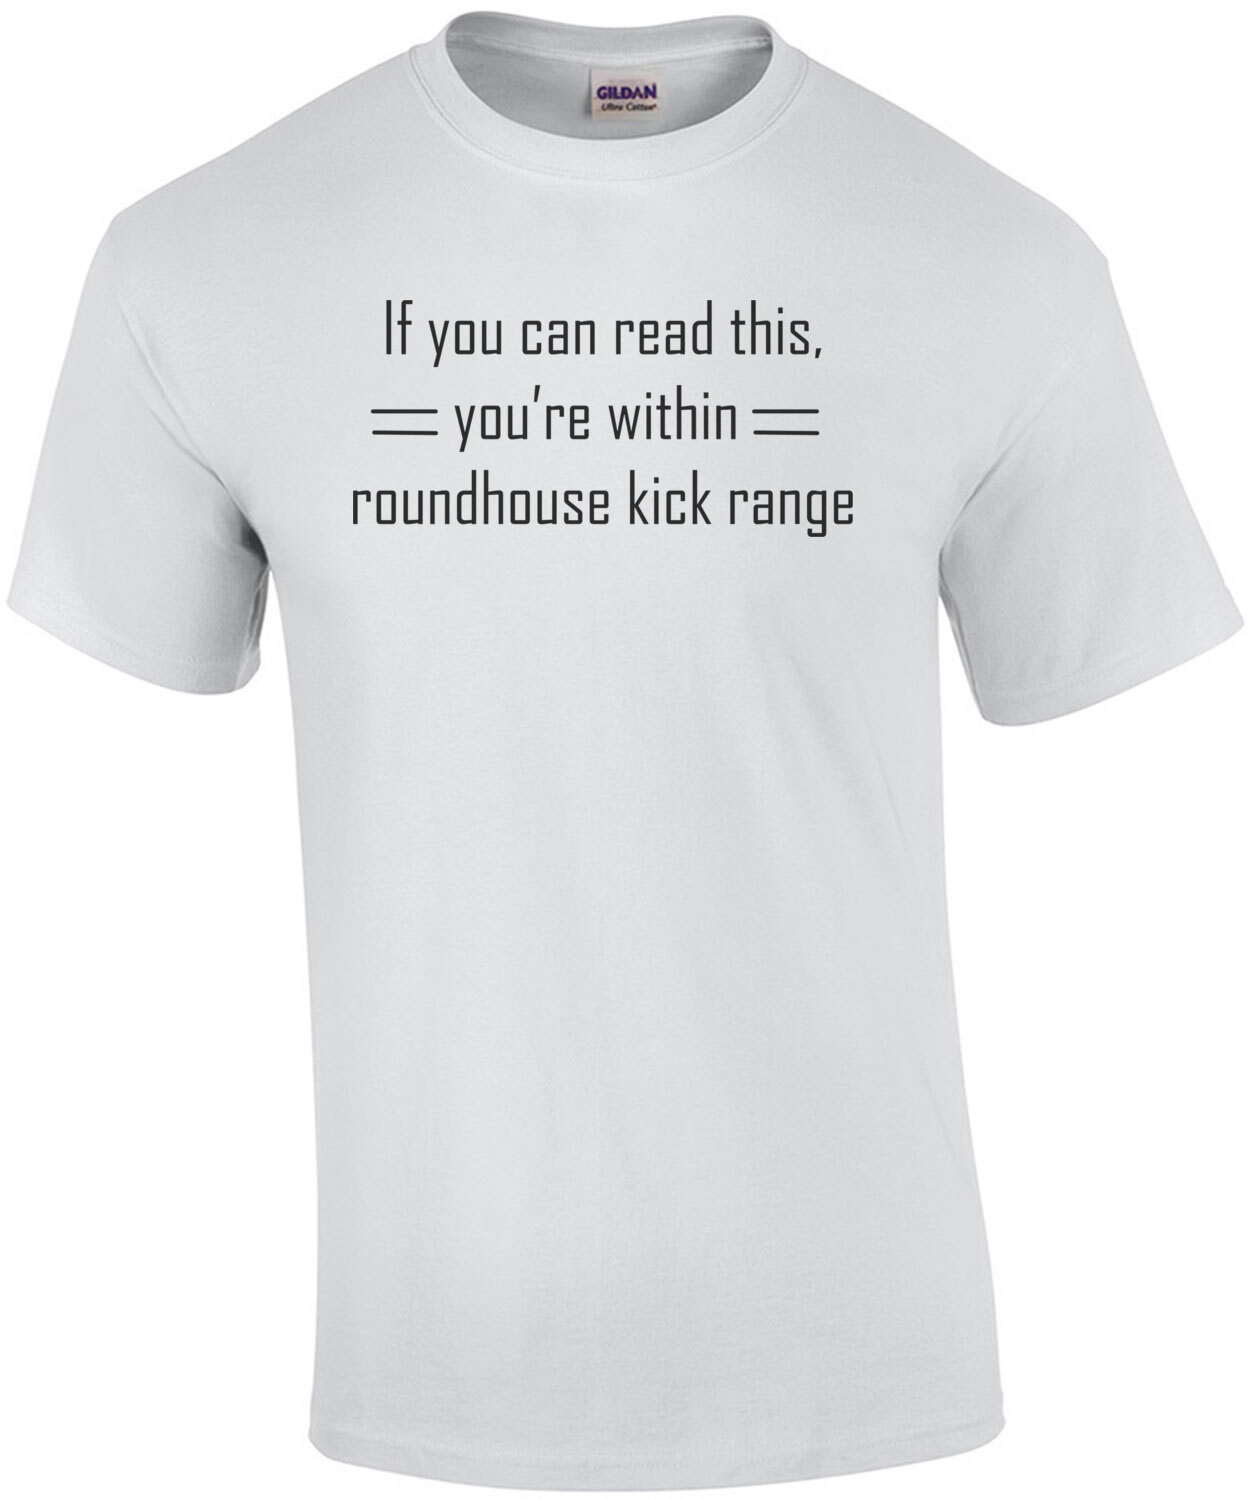 If You Can Read This, You're Within Roundhouse Kick Range T-Shirt